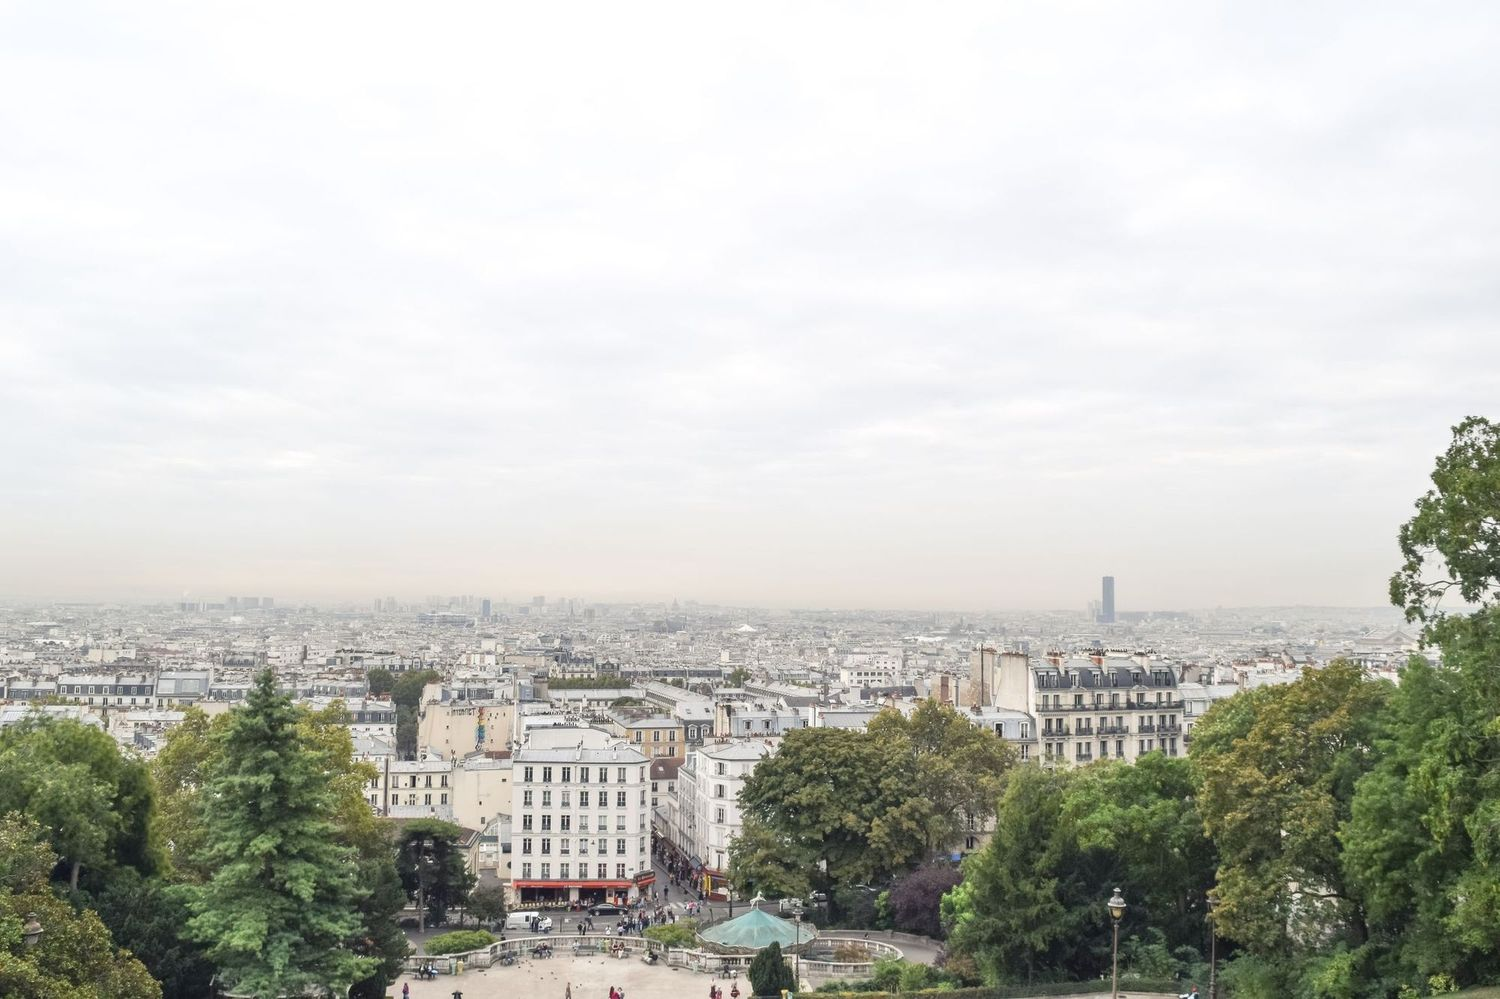 View from Sacre Coeur in Montmartre, Paris